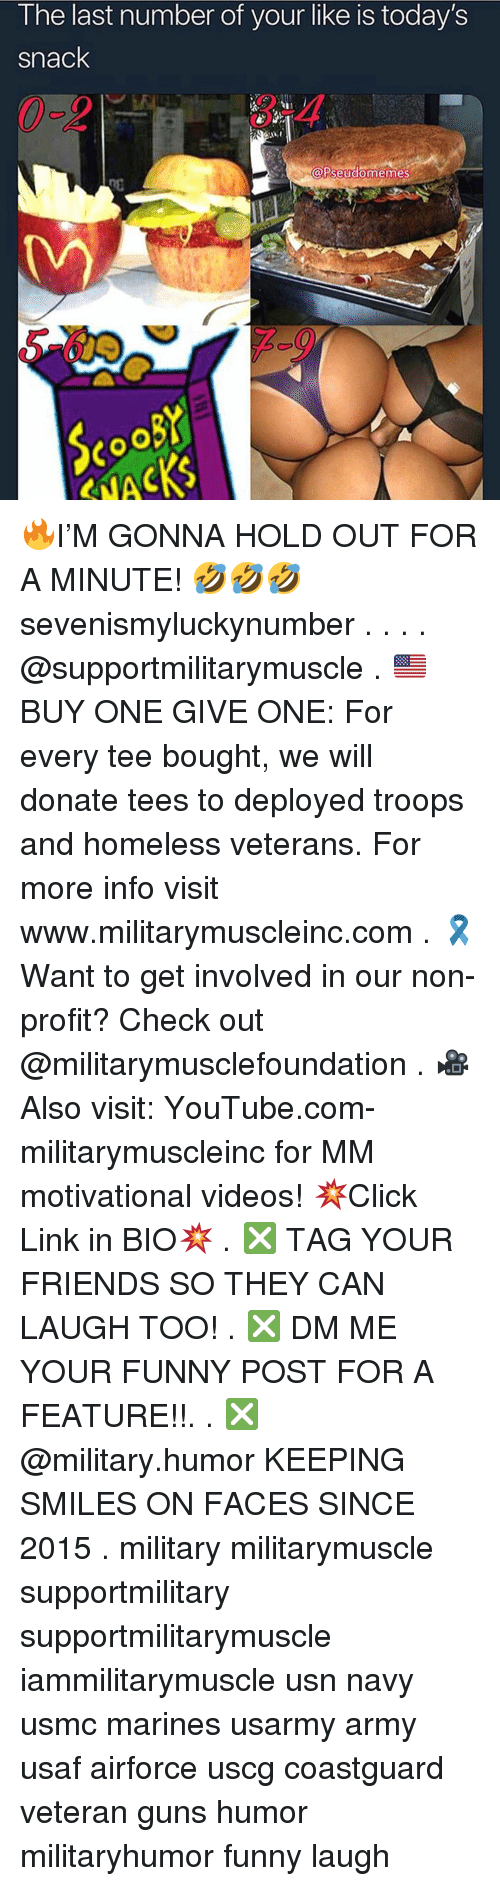 Friends, Funny, and Guns: I he last number of your like is today's  snack  3-4  A  PseudomemeS 🔥I'M GONNA HOLD OUT FOR A MINUTE! 🤣🤣🤣 sevenismyluckynumber . . . . @supportmilitarymuscle . 🇺🇸BUY ONE GIVE ONE: For every tee bought, we will donate tees to deployed troops and homeless veterans. For more info visit www.militarymuscleinc.com . 🎗Want to get involved in our non-profit? Check out @militarymusclefoundation . 🎥Also visit: YouTube.com-militarymuscleinc for MM motivational videos! 💥Click Link in BIO💥 . ❎ TAG YOUR FRIENDS SO THEY CAN LAUGH TOO! . ❎ DM ME YOUR FUNNY POST FOR A FEATURE!!. . ❎ @military.humor KEEPING SMILES ON FACES SINCE 2015 . military militarymuscle supportmilitary supportmilitarymuscle iammilitarymuscle usn navy usmc marines usarmy army usaf airforce uscg coastguard veteran guns humor militaryhumor funny laugh